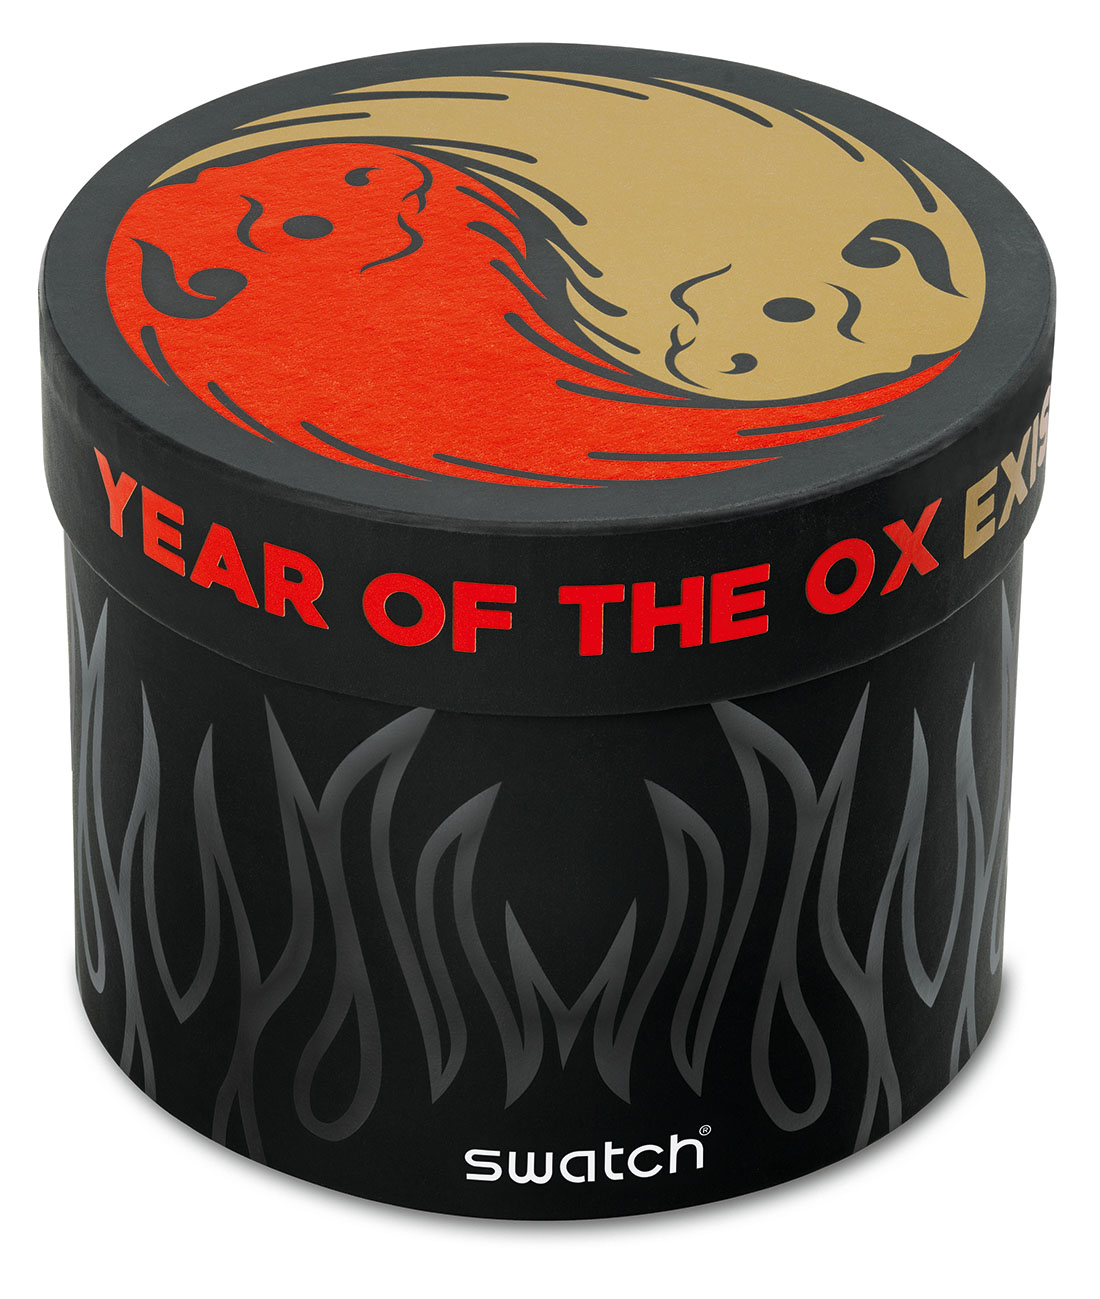 Swatch Year of the Ox